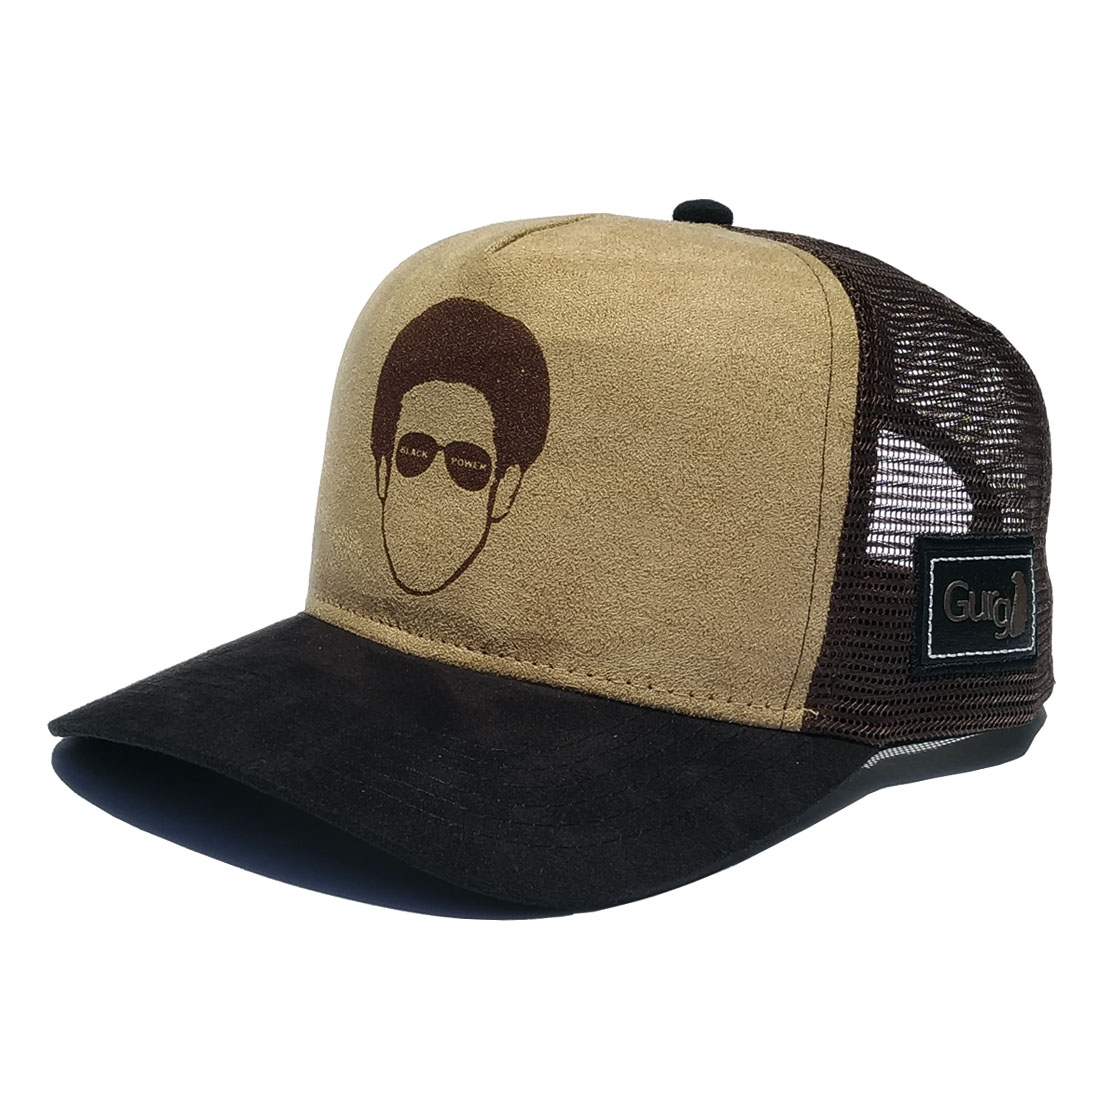 Boné Gurg Trucker Americano Aba Curva Black Power